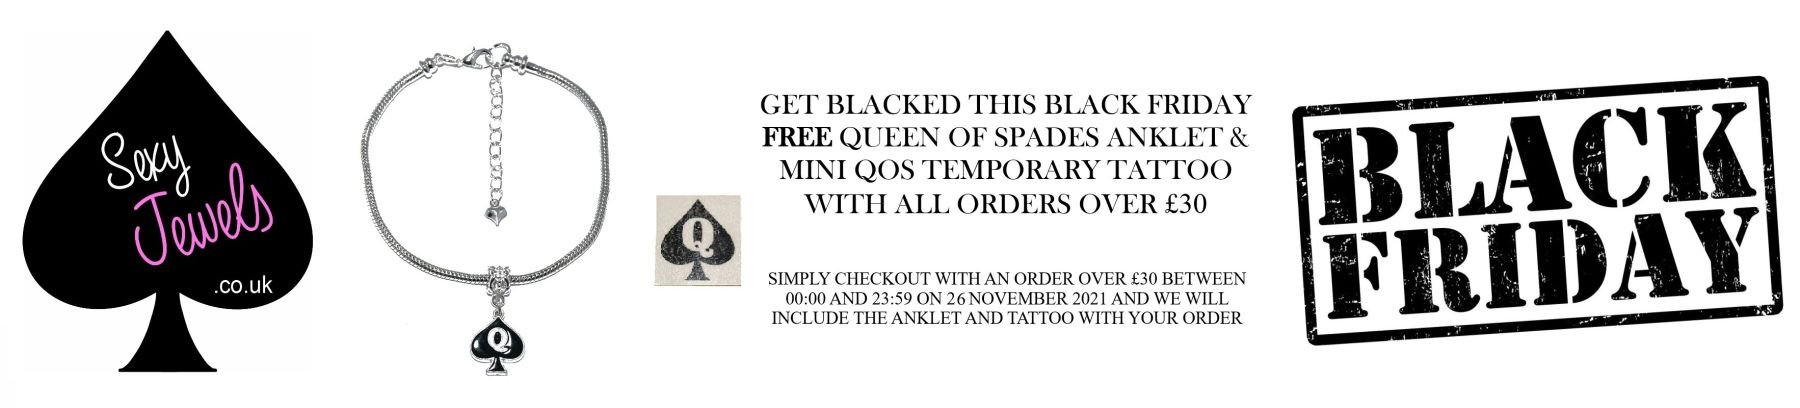 BLACK FRIDAY 2019 - www.sexyjewels.co.uk - Hotwife Anklets, Queen Of Spade Tattoos